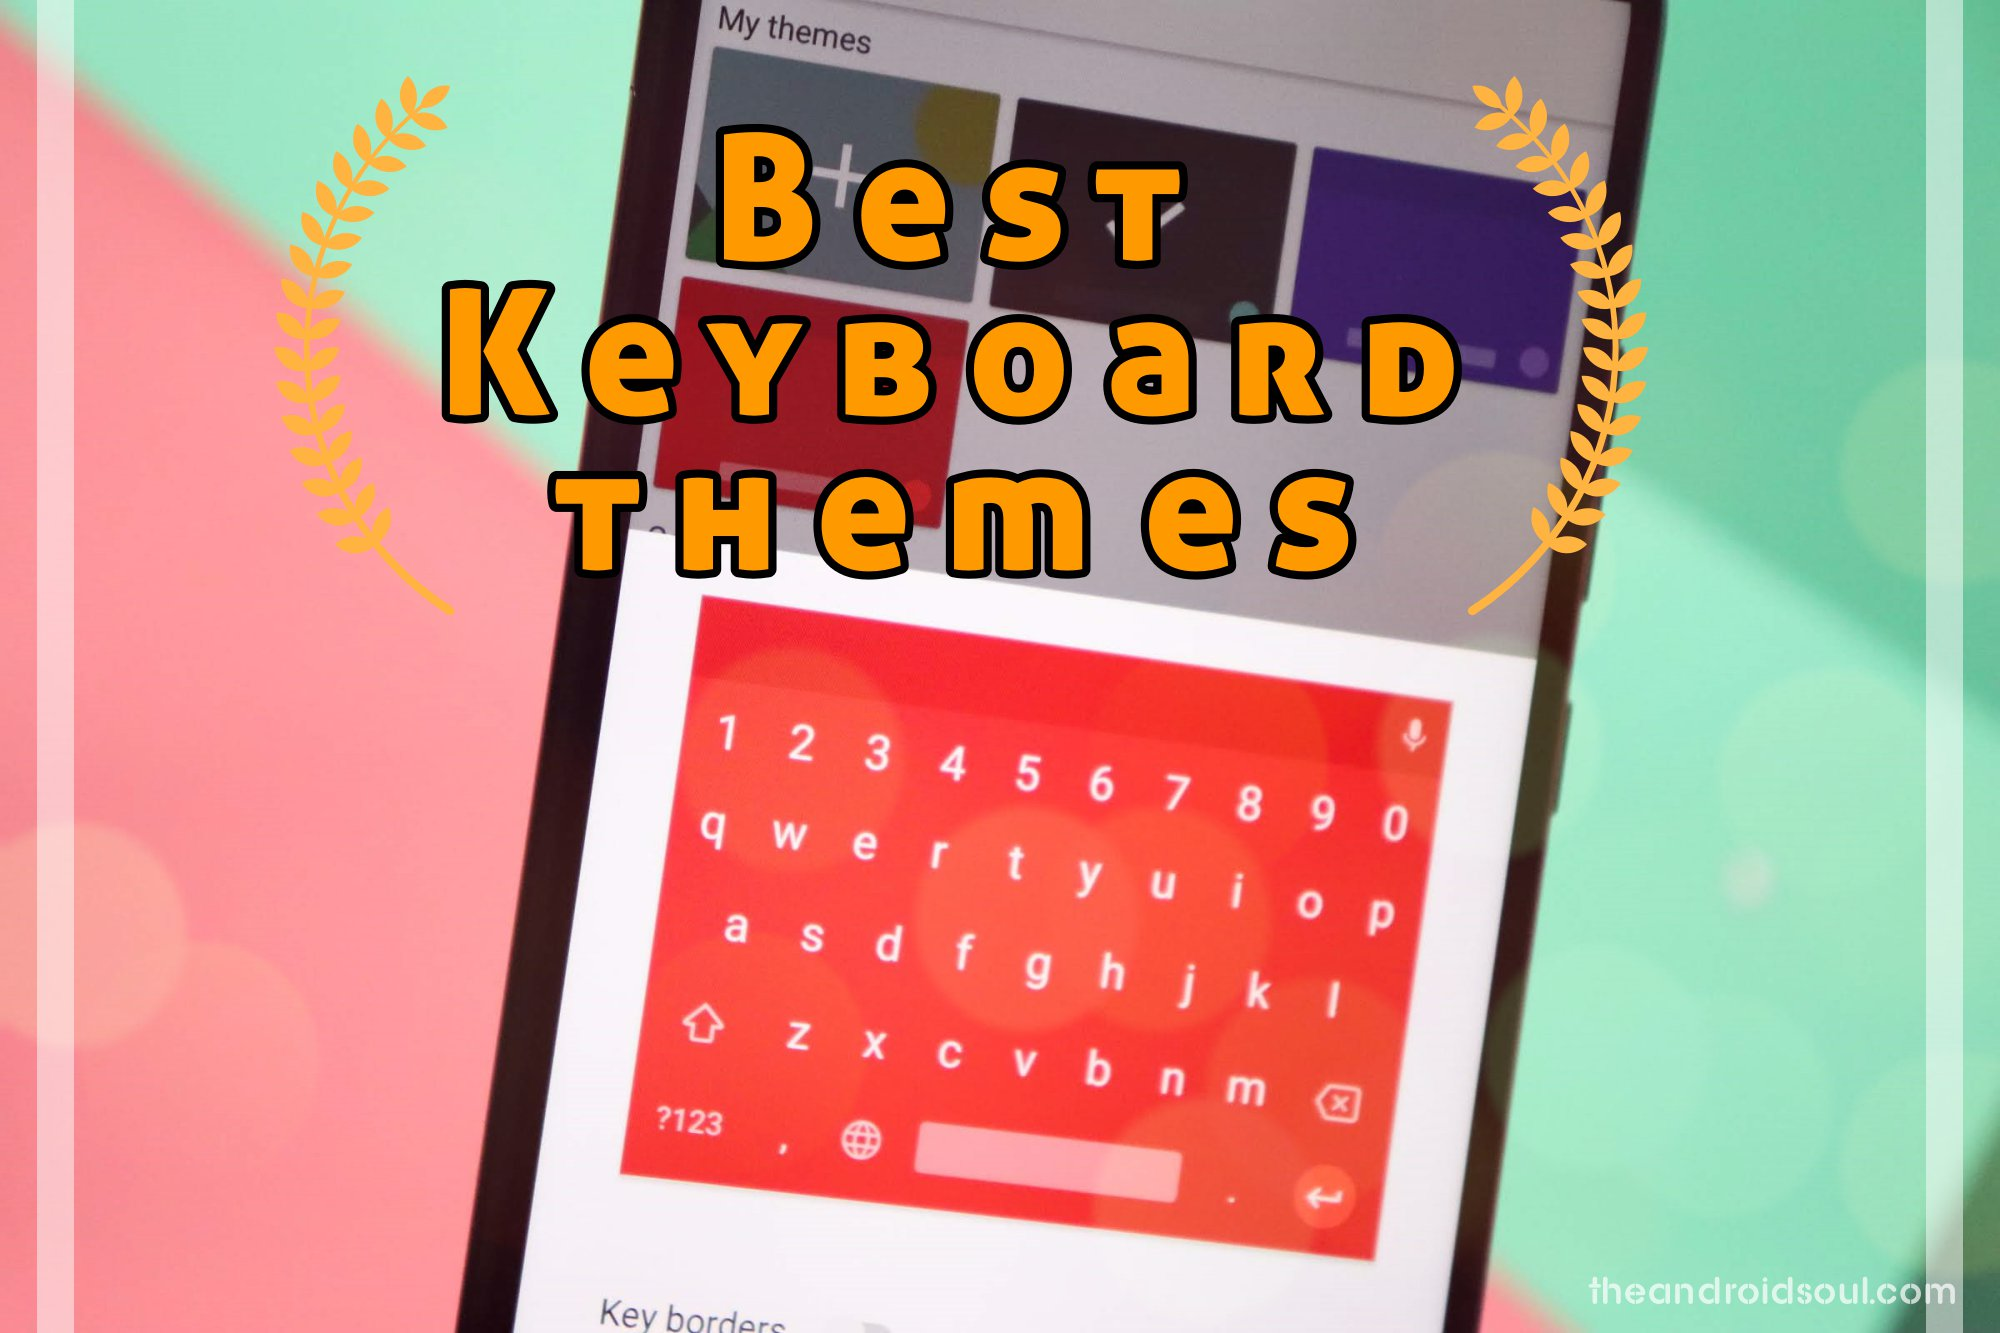 Pick up the best keyboard theme for your Android device from